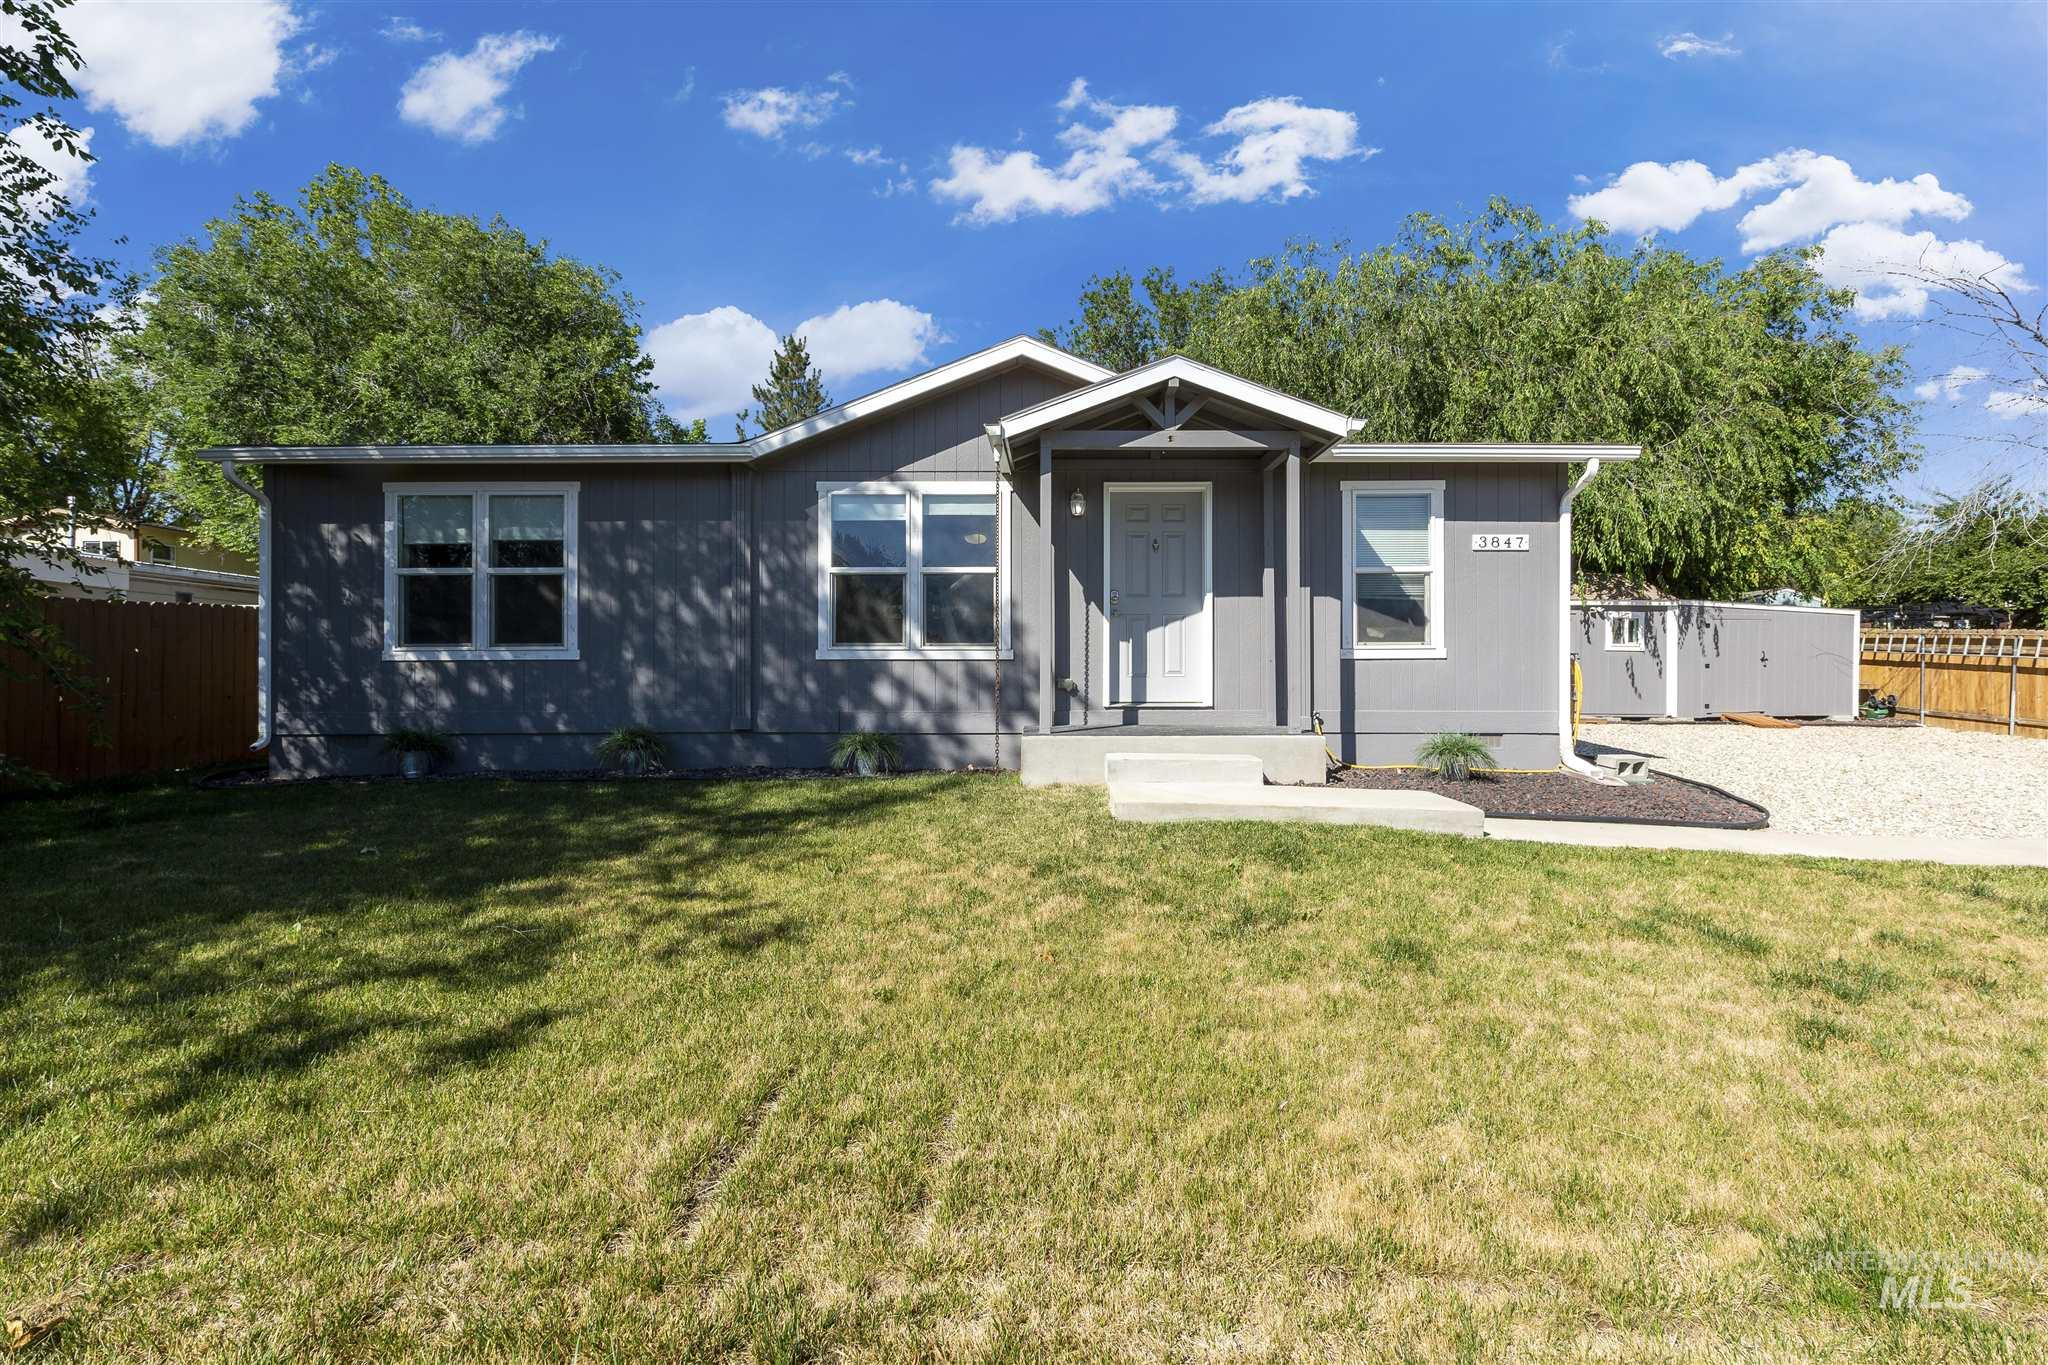 LOCATION! No HOA.   This 3bed/2bath split level home is located in a quiet neighborhood just minutes away from freeway access, schools, shopping and entertainment.   It features laminate flooring throughout the home, has beautiful curb appeal, and the double shed is an added bonus as well. Washer/Dryer included as well as all kitchen appliances. Blink and you'll miss it! BTVAI